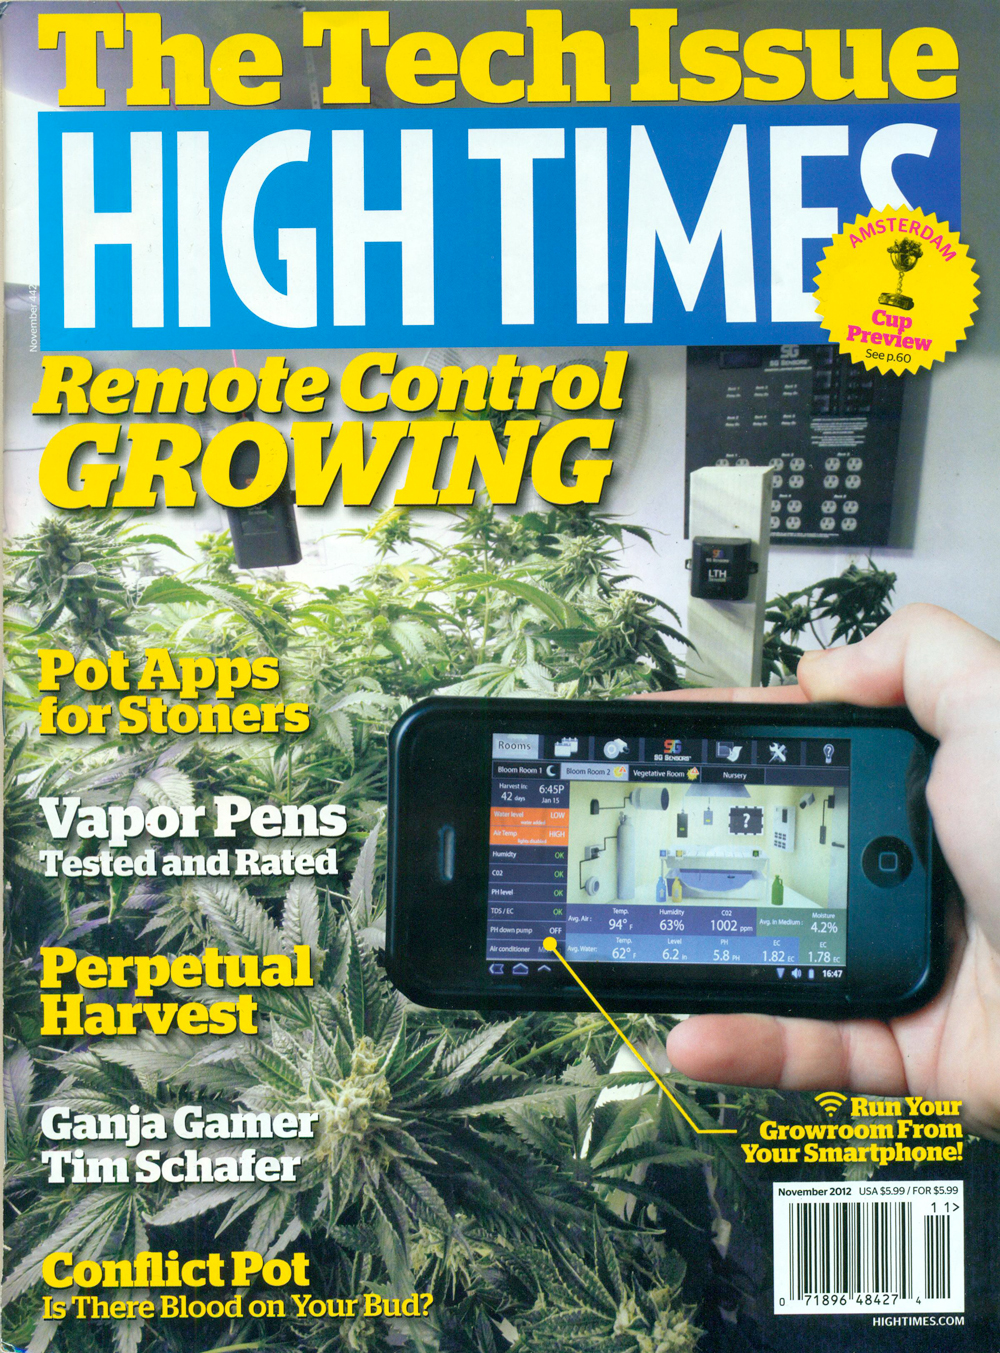 Hightimes-the-tech-issue-2012-frontcover.jpg